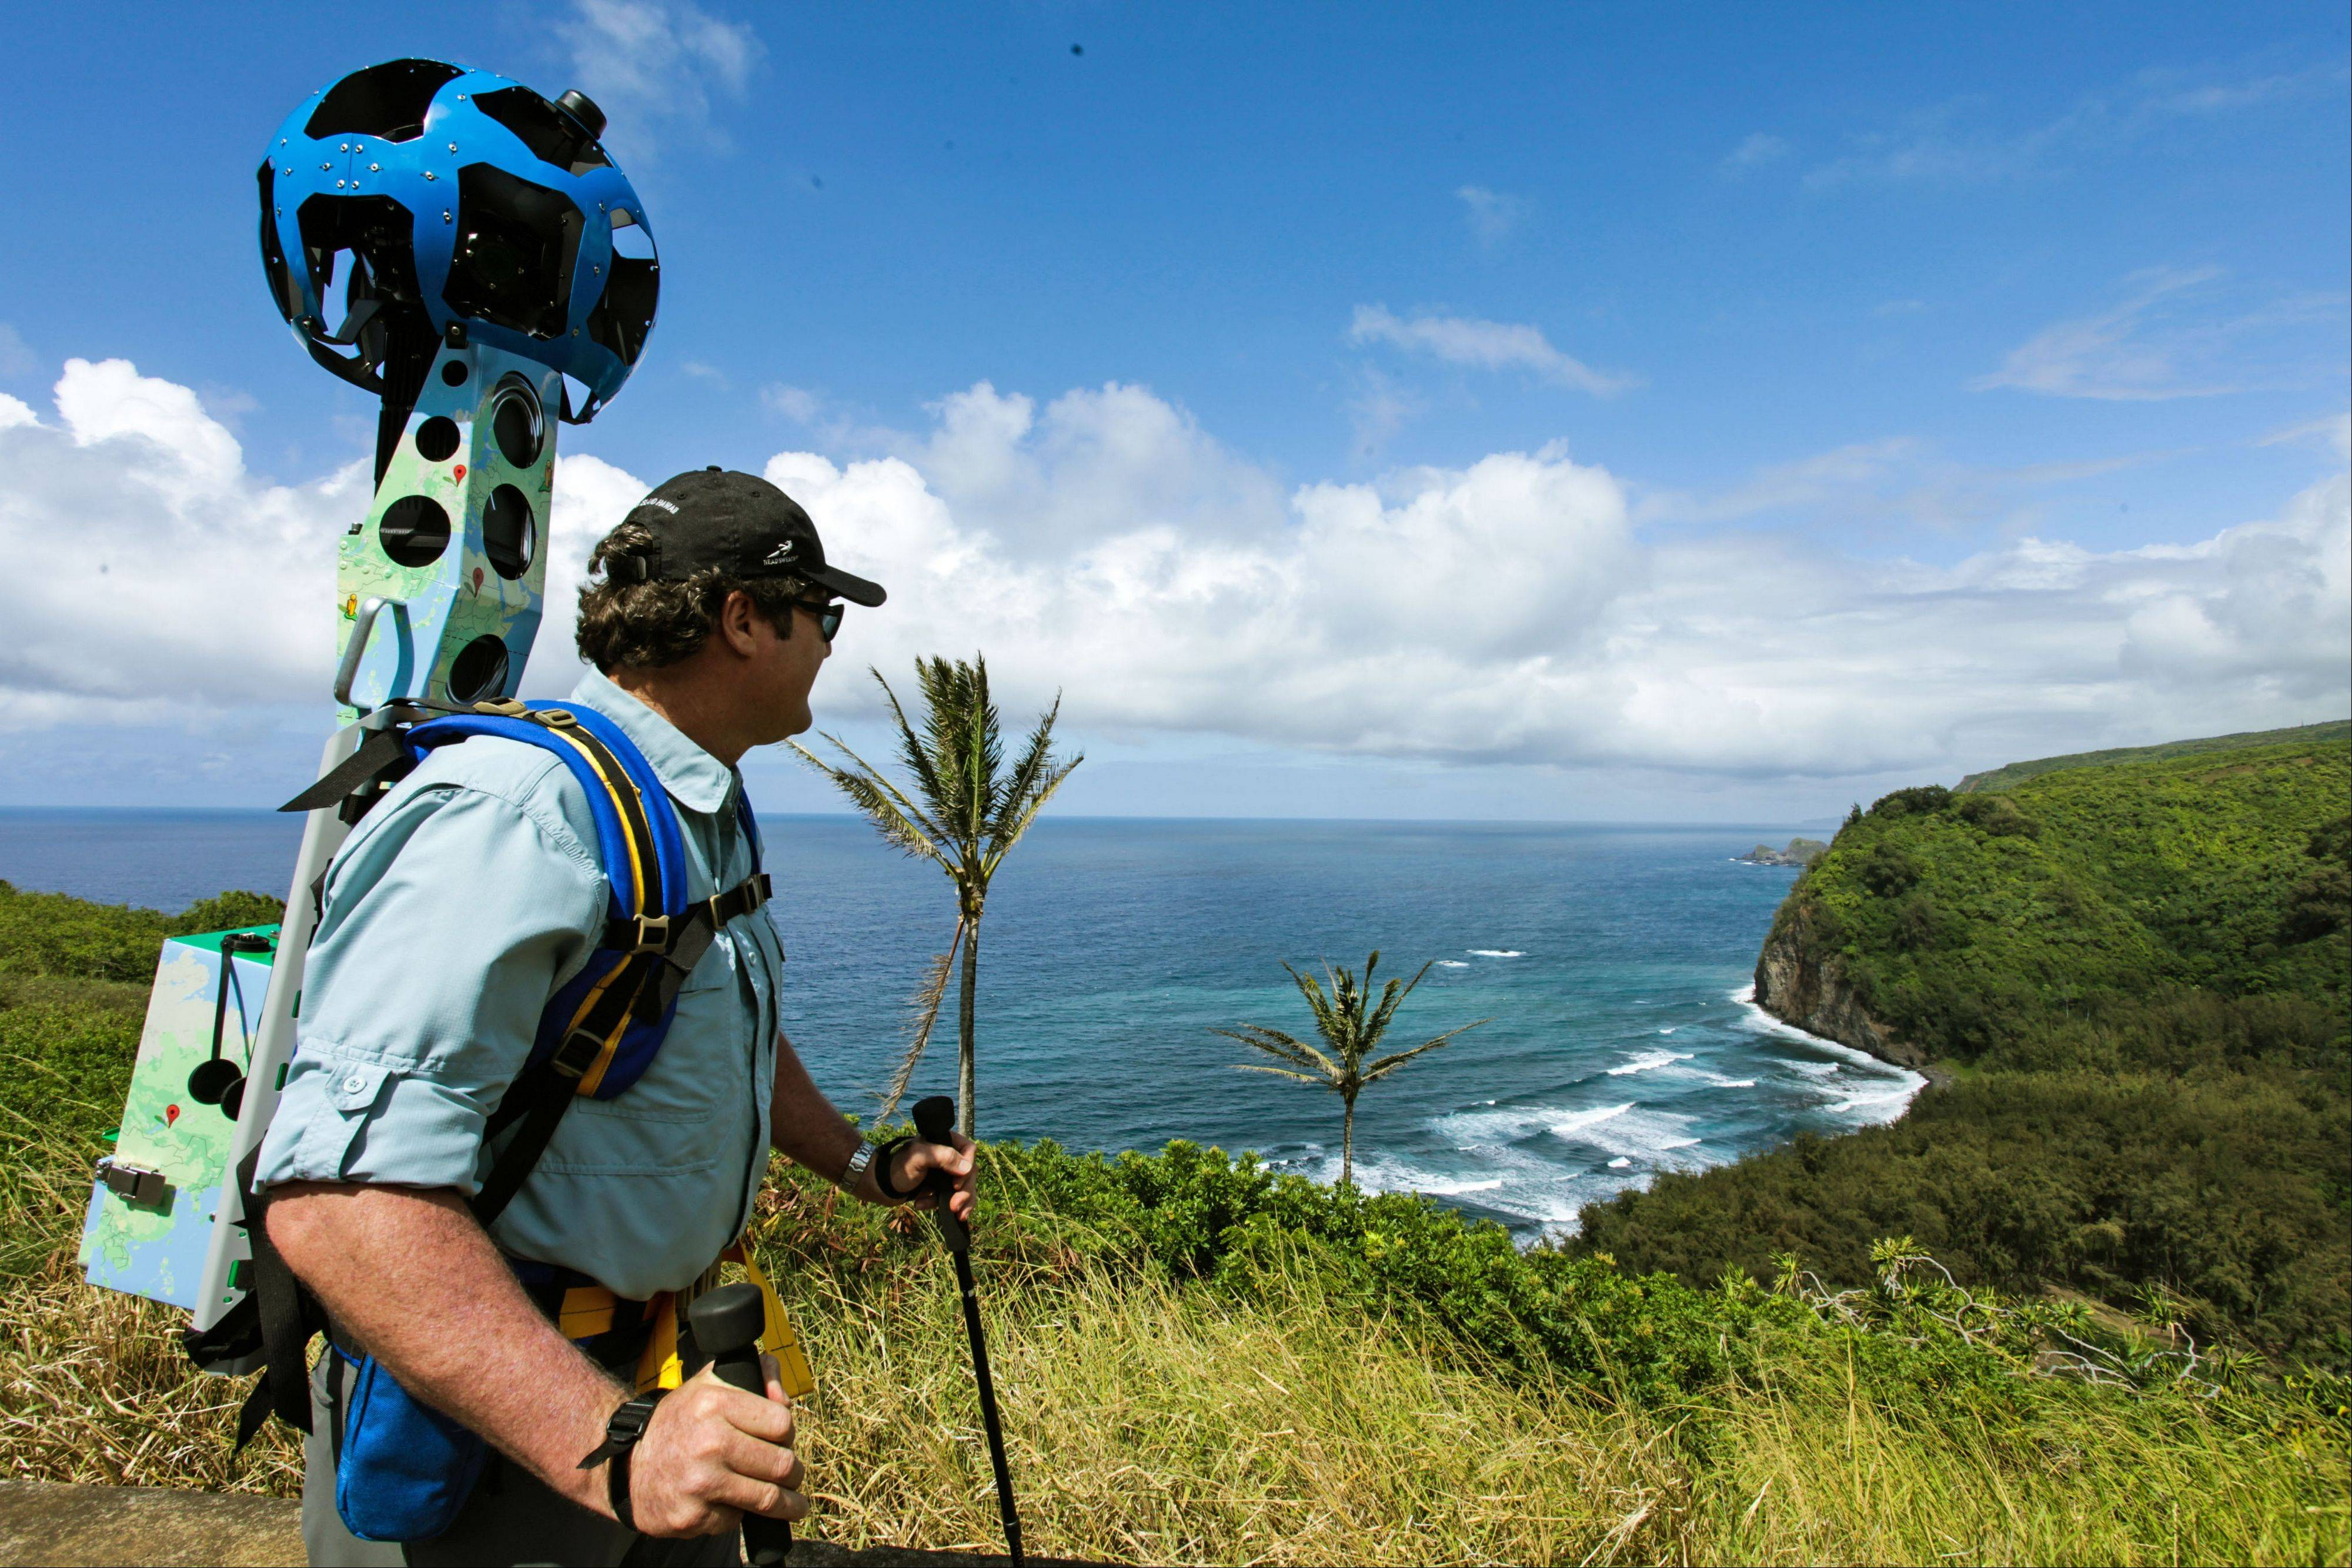 Rob Pacheco, president of Hawaii Forest & Trail, takes in the view at Pololu Valley�s Awini Trail near Kapaau, Hawaii, while wearing the Street View Trekker. Hawaii�s volcanoes, rain forests and beaches will soon be visible on Google Street View.